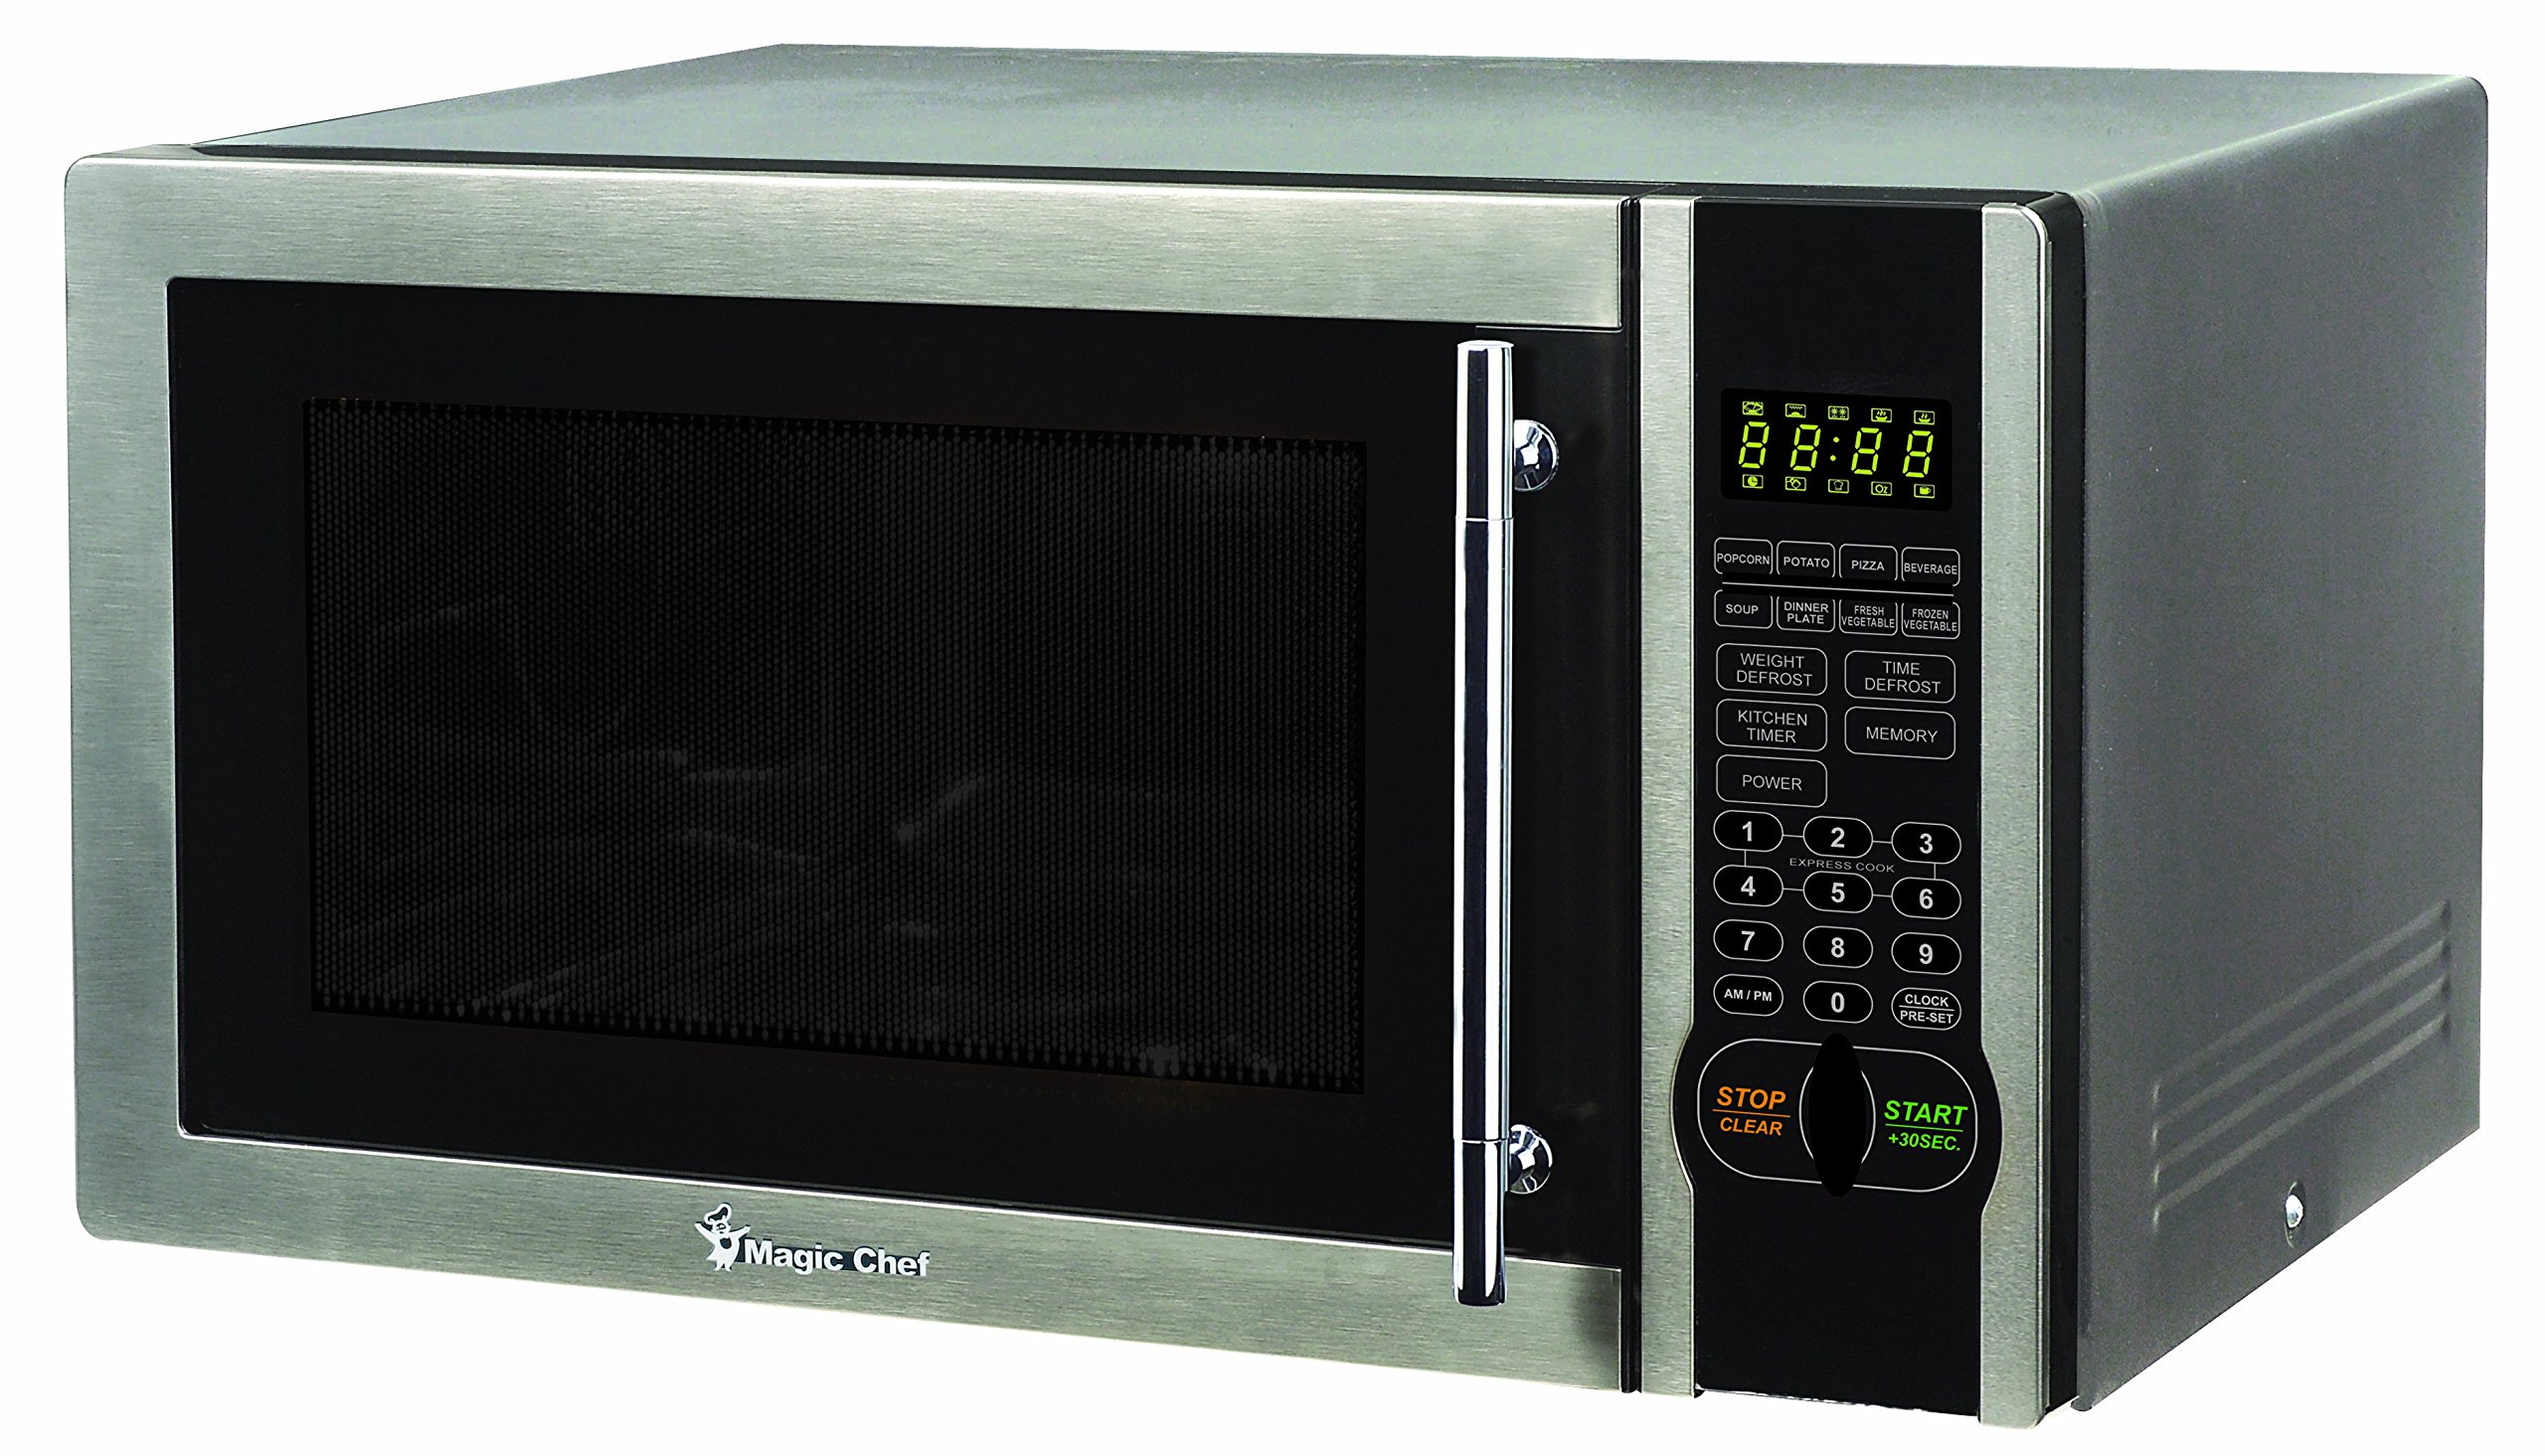 Magic Chef Mcm1110St 1.1 Cubic Feet 1000-Watt Stainless Microwave with Digital Touch